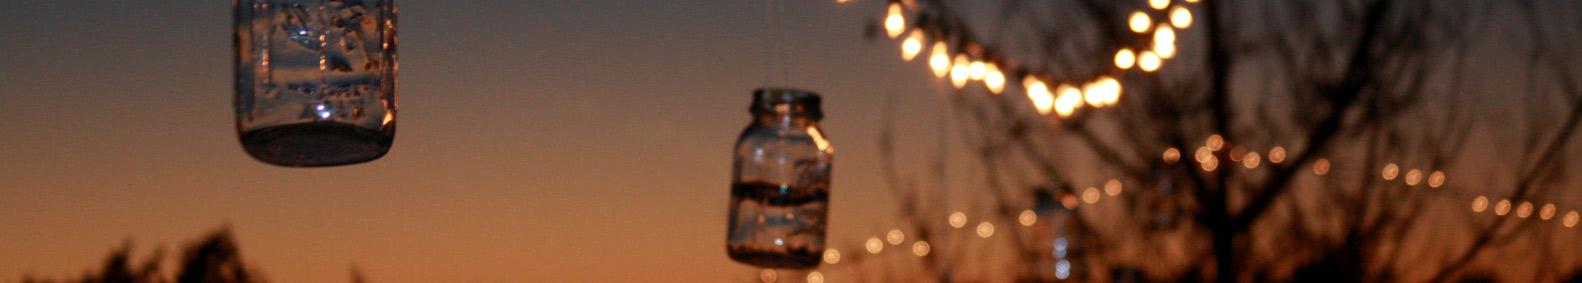 Glass jars hanging from line at sunset